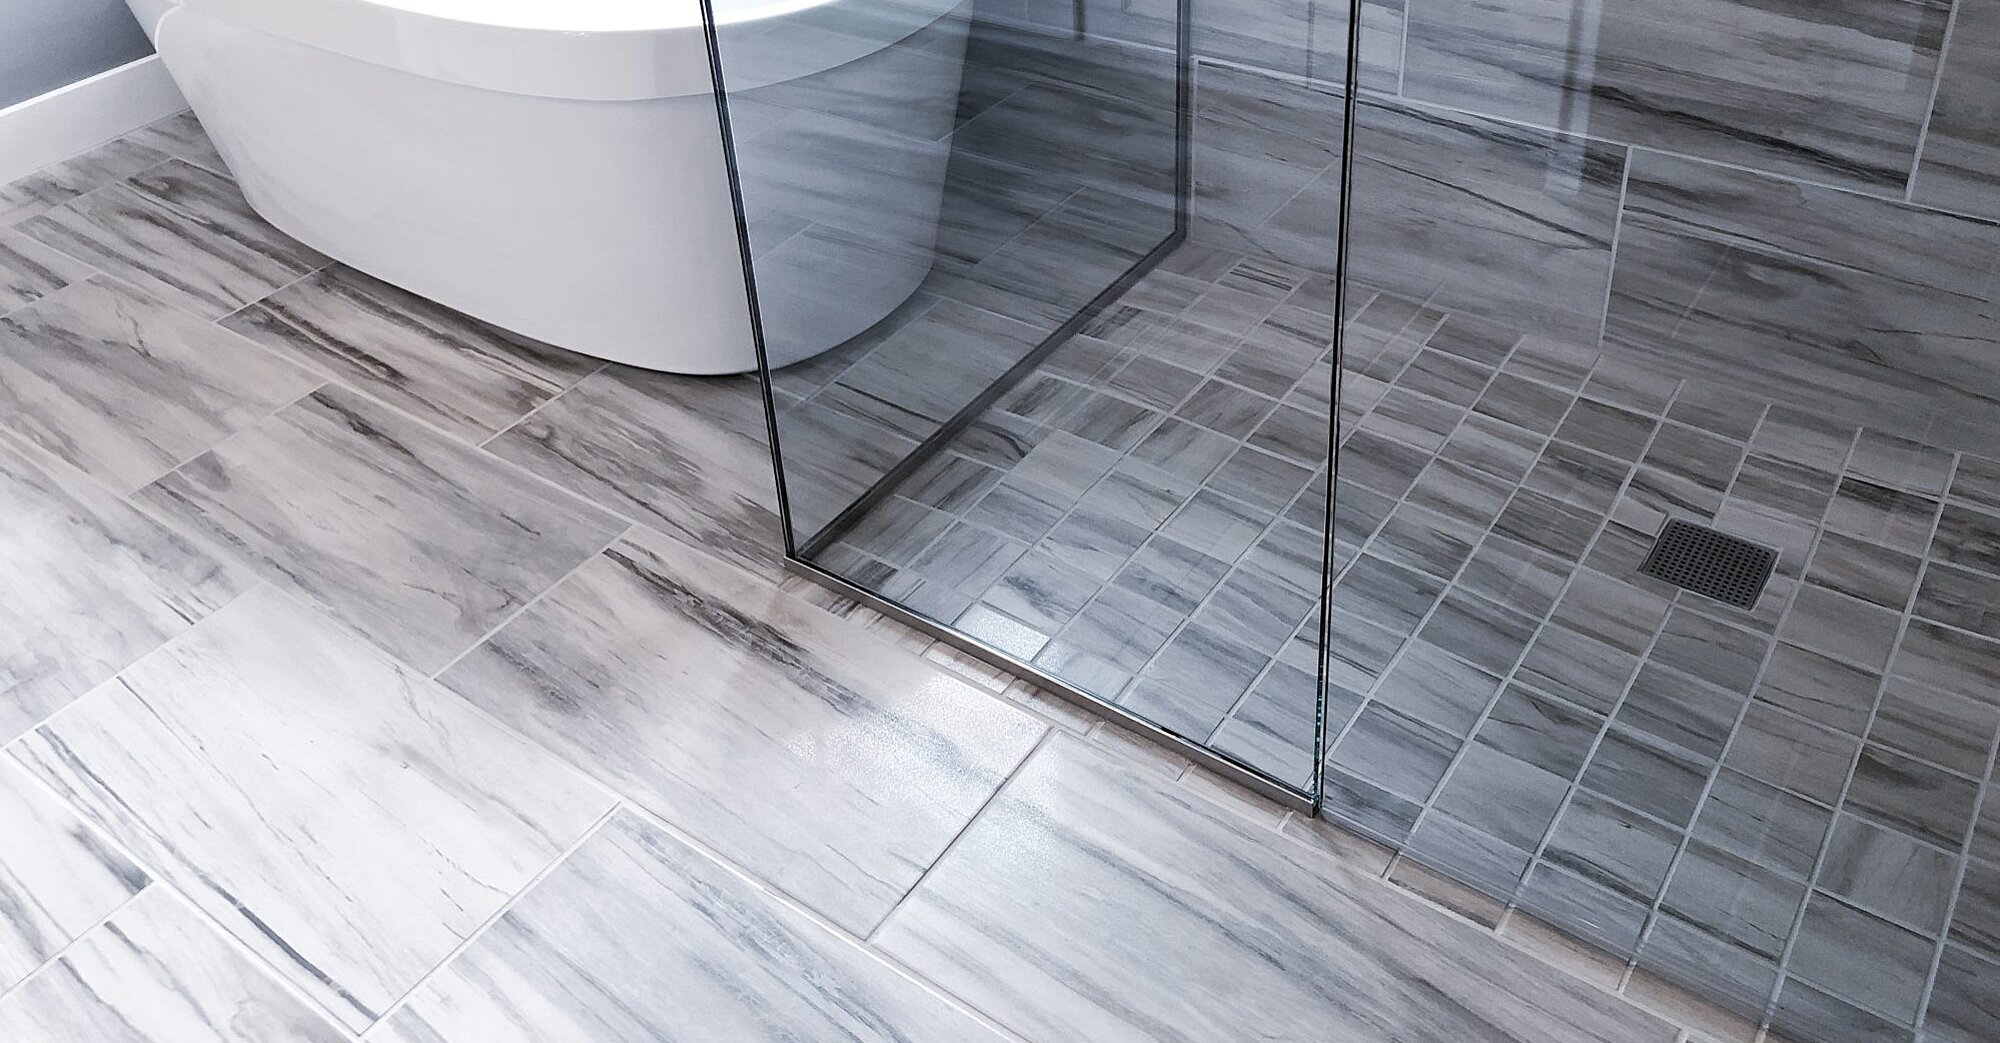 How to Make Your Glass Shower Doors Sparkle